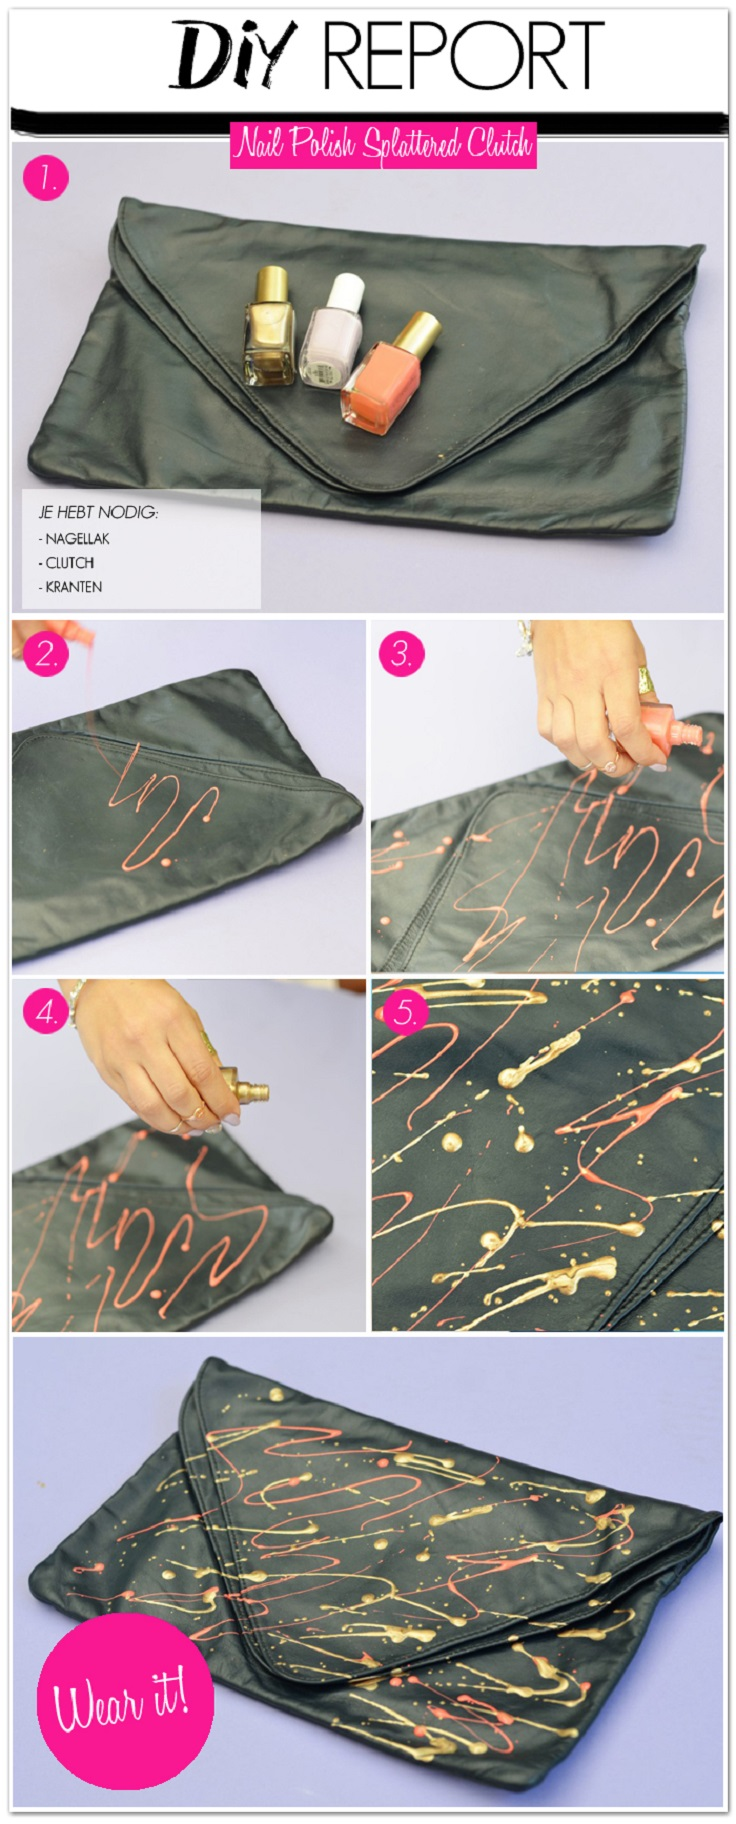 Top 10 Unusual Things You Can Do with Nail Polish